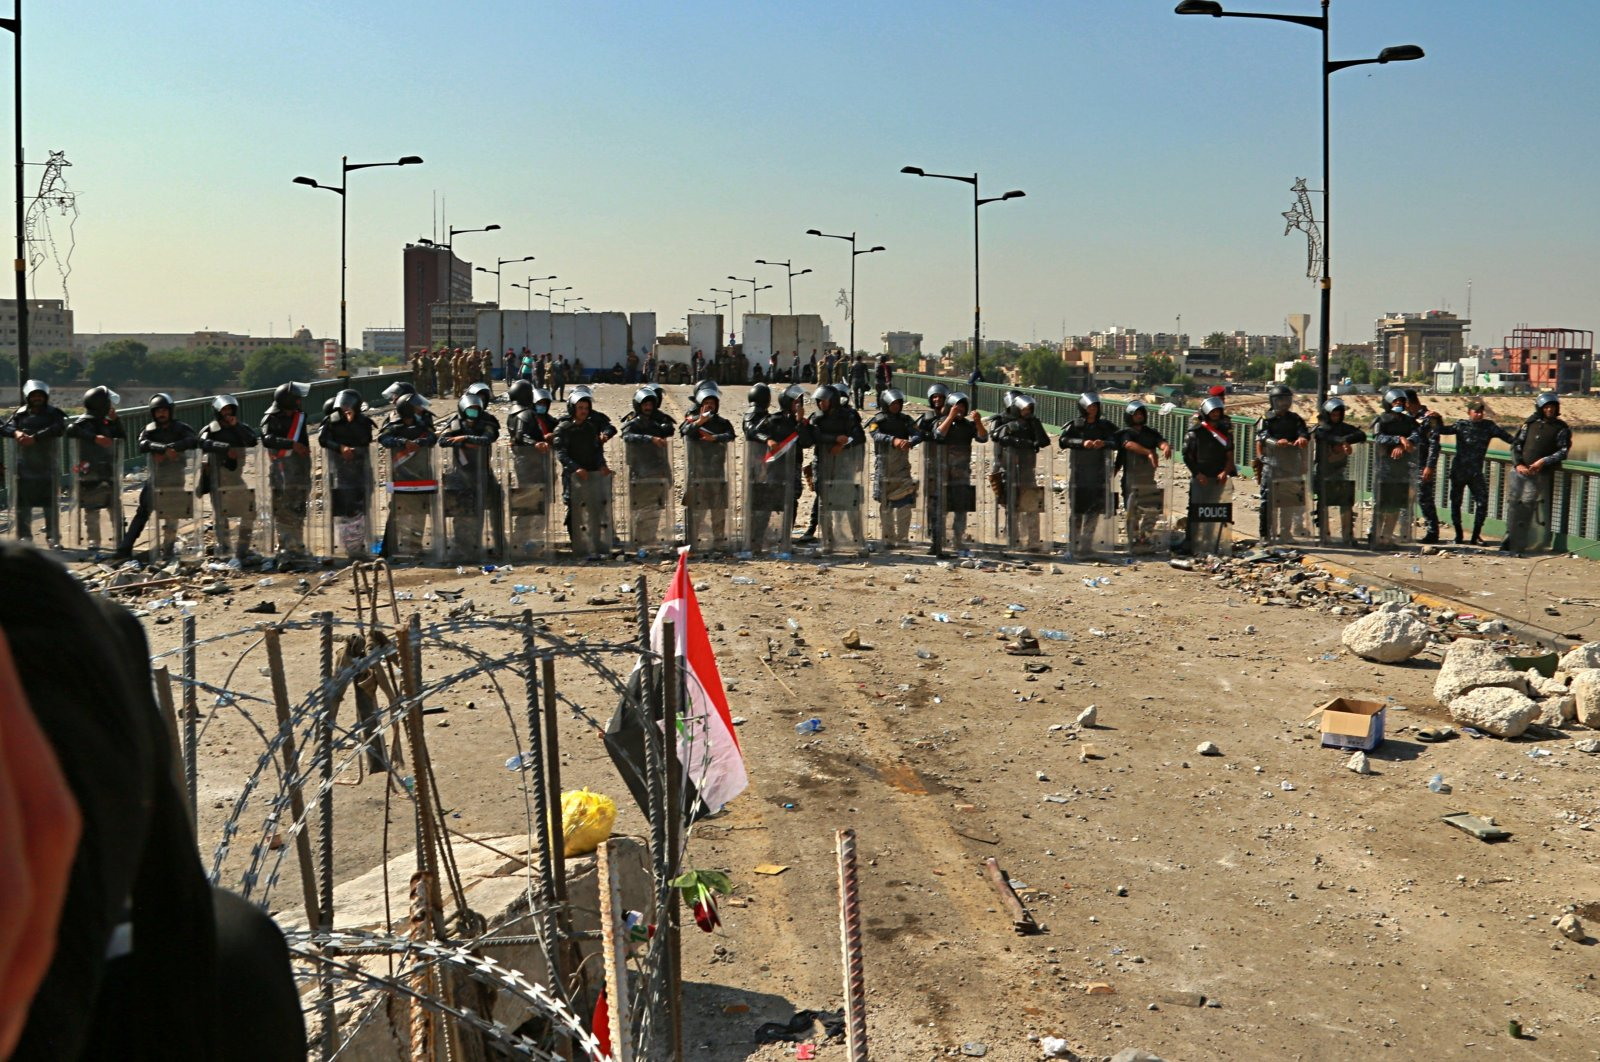 Security forces close the bridge leading to the Green Zone during a demonstration, Baghdad, Oct. 26, 2019. (AP Photo)